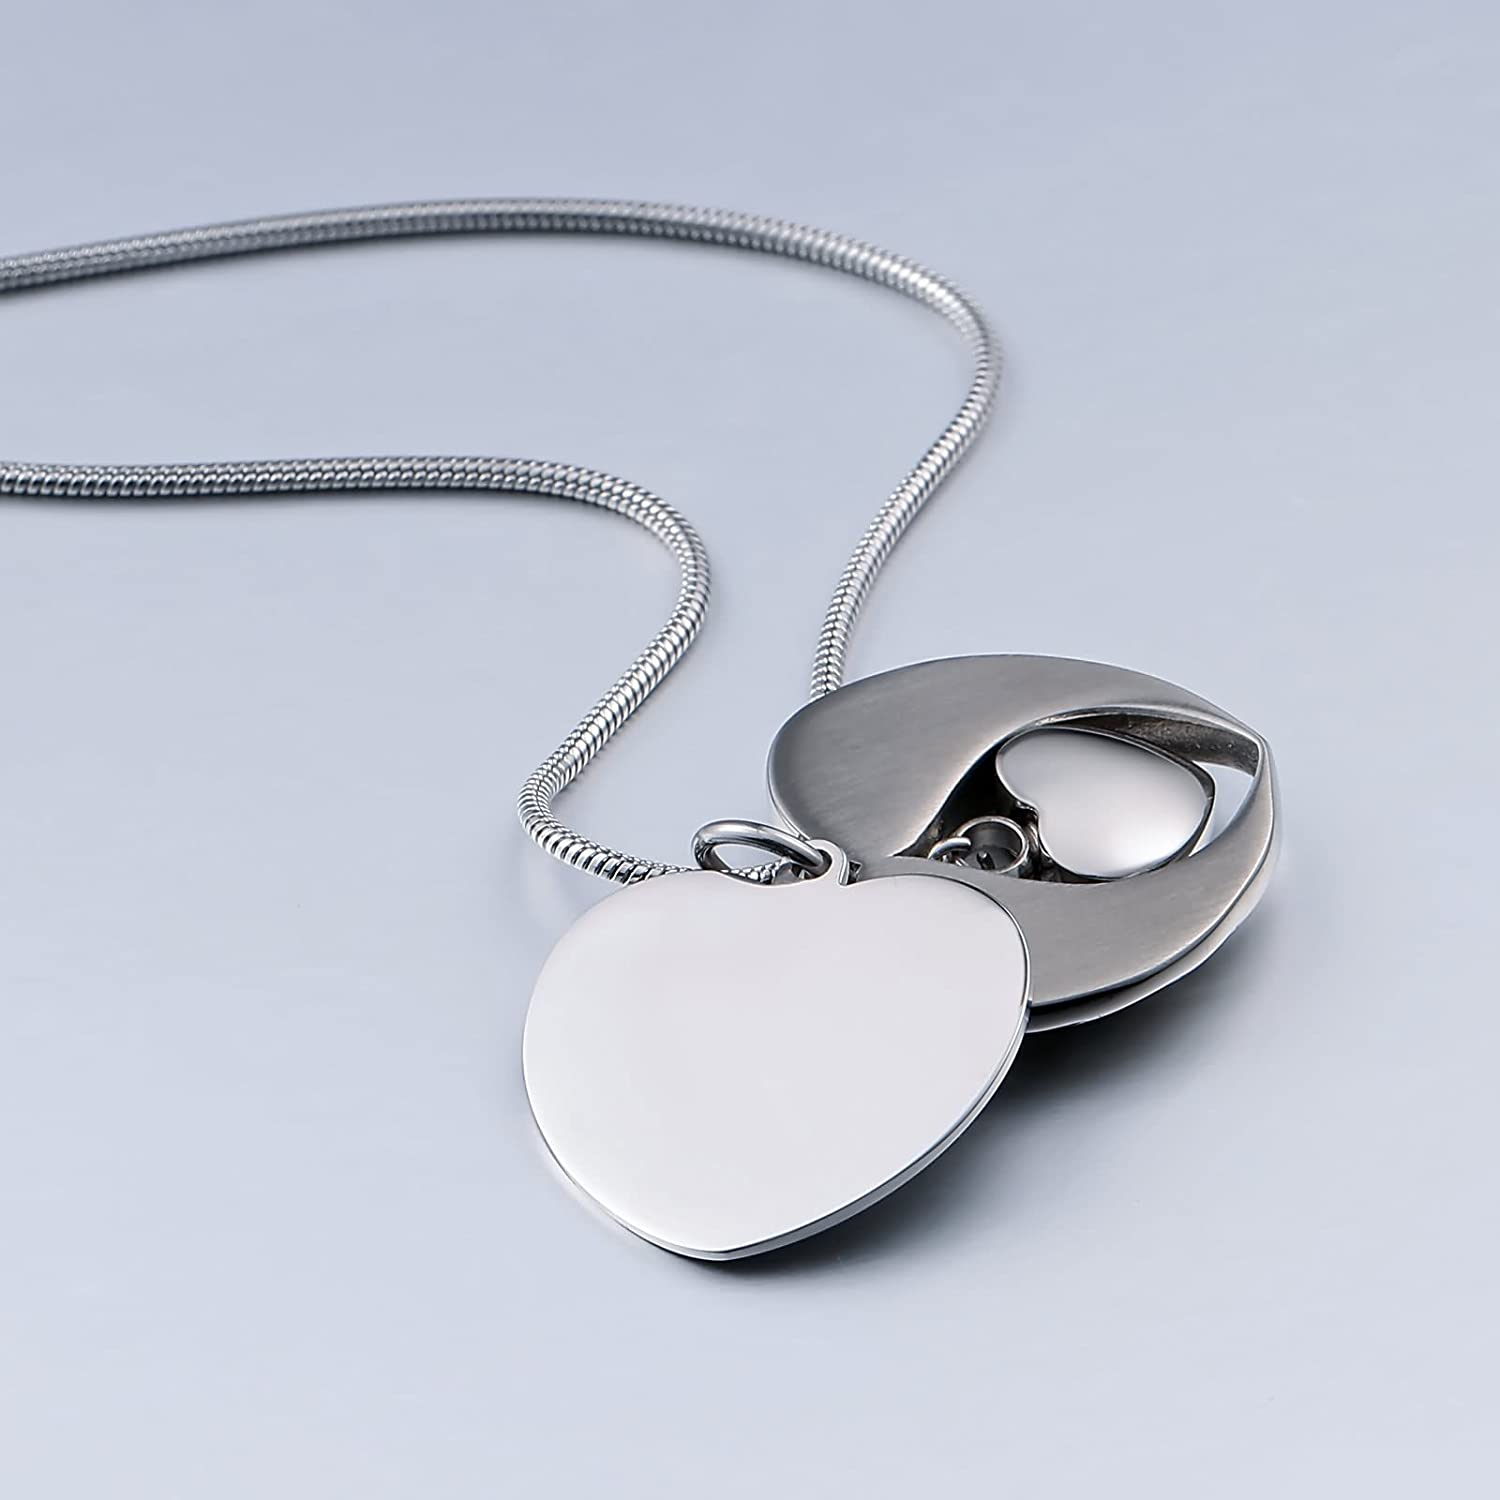 Beydodo Stainless Steel Memorial Necklace UrnEngravedAsh Necklace Urn Wings Heart Cremation Ash Necklace U1RMma